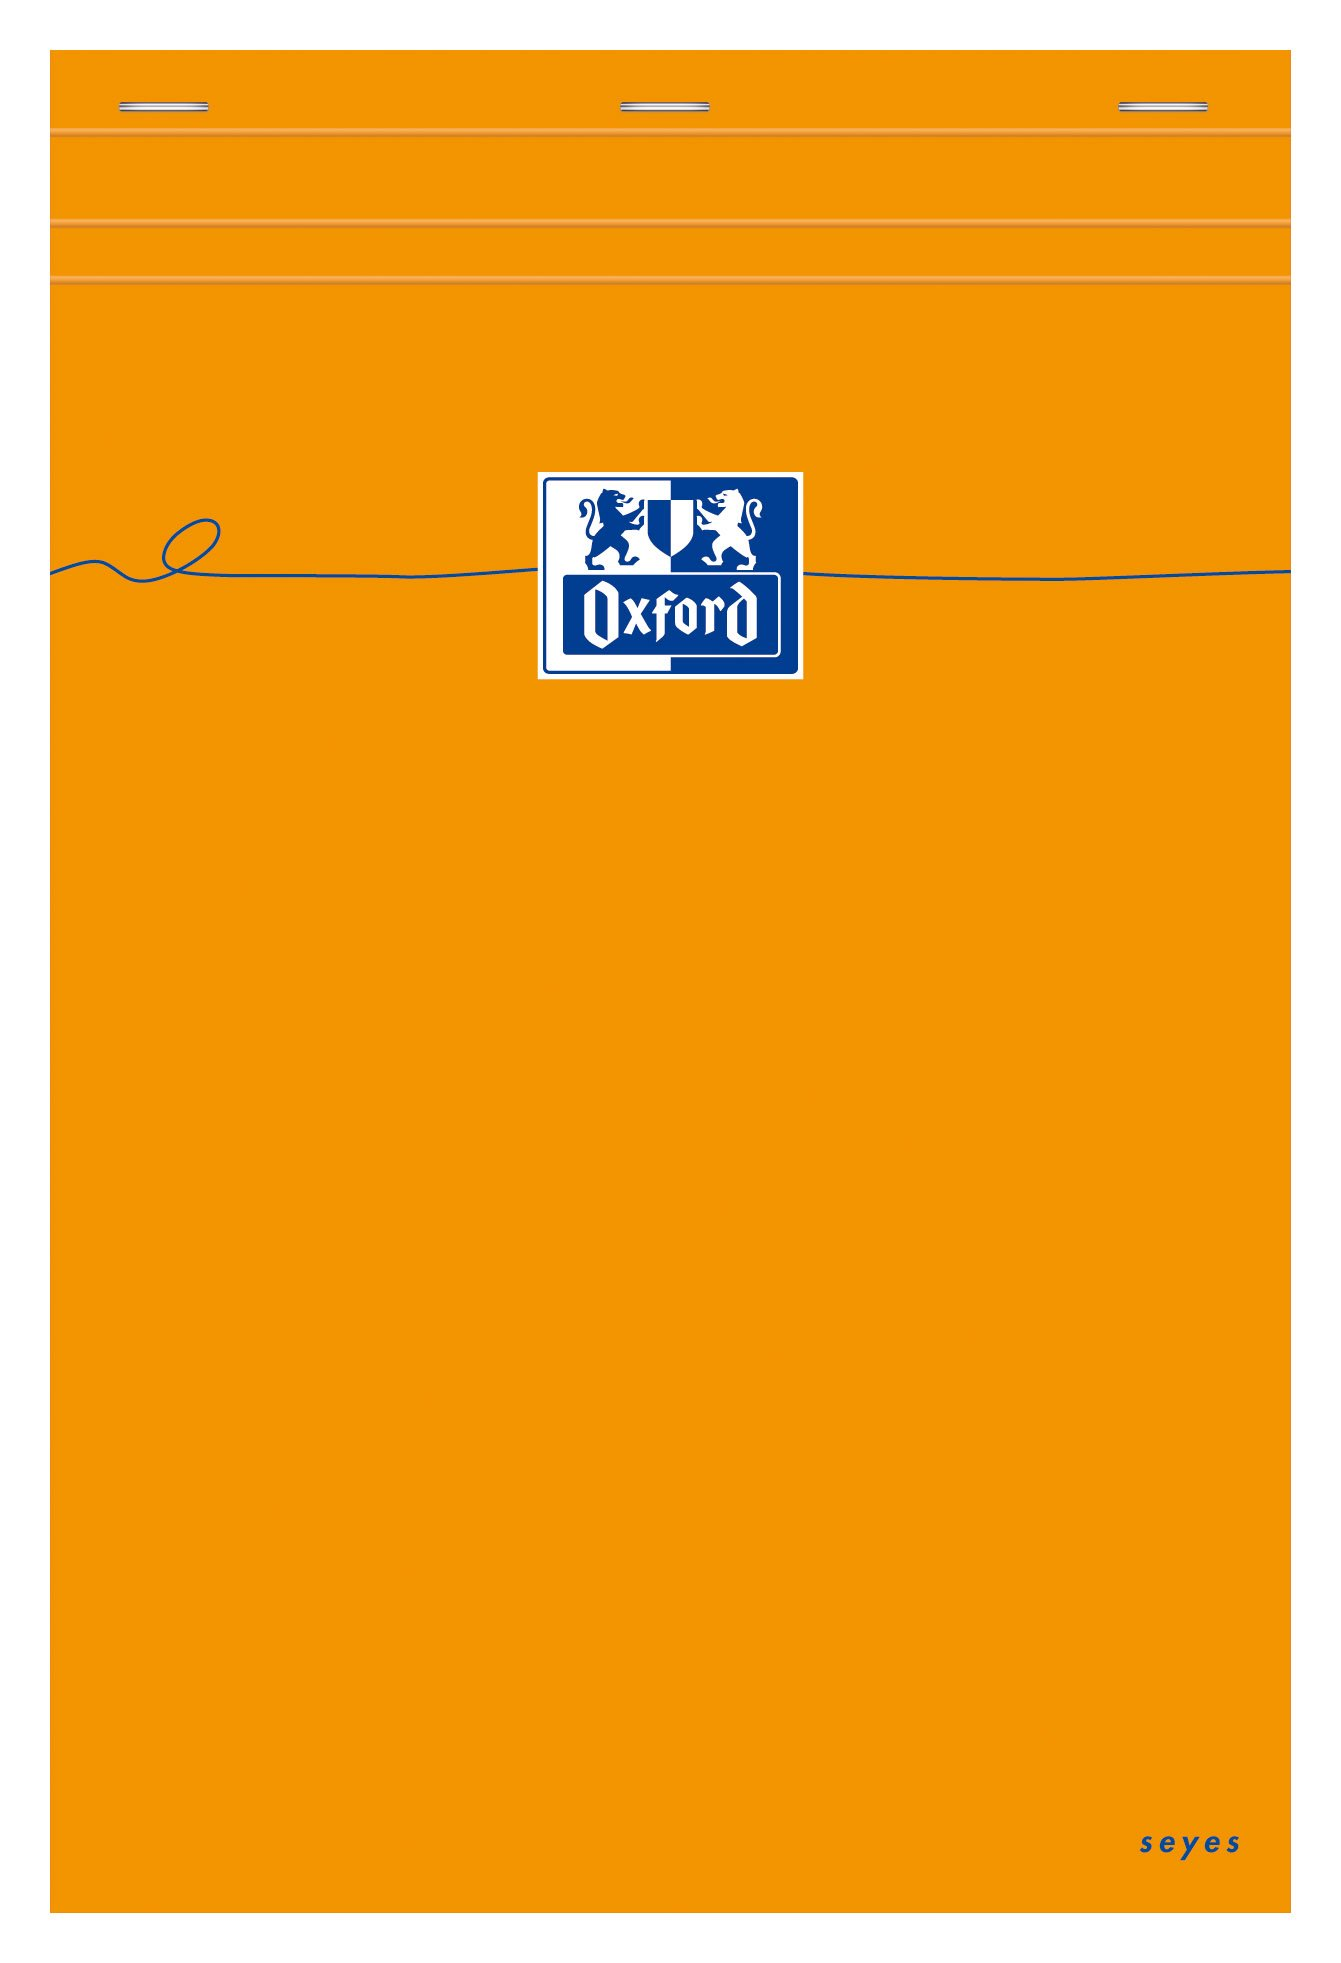 Pack of 5 Oxford notepads Large Squares Seyès-Ruled 160 Pages A4 Orange